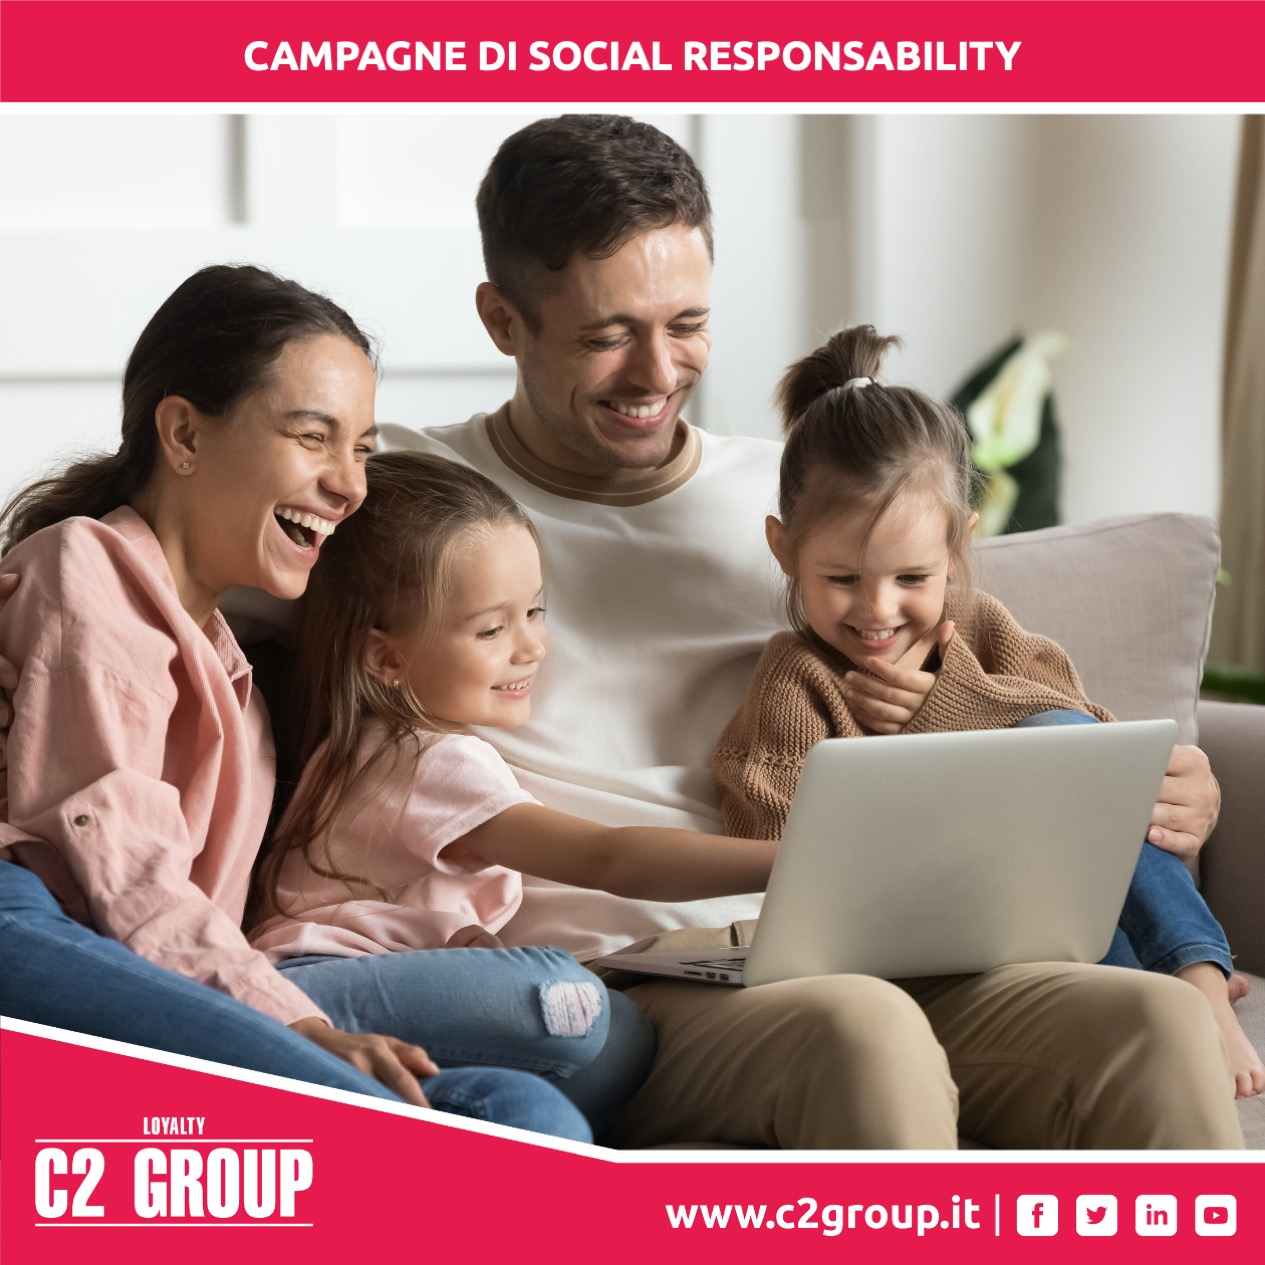 CAMPAGNE SOCIAL RESPONSABILITY c2 group